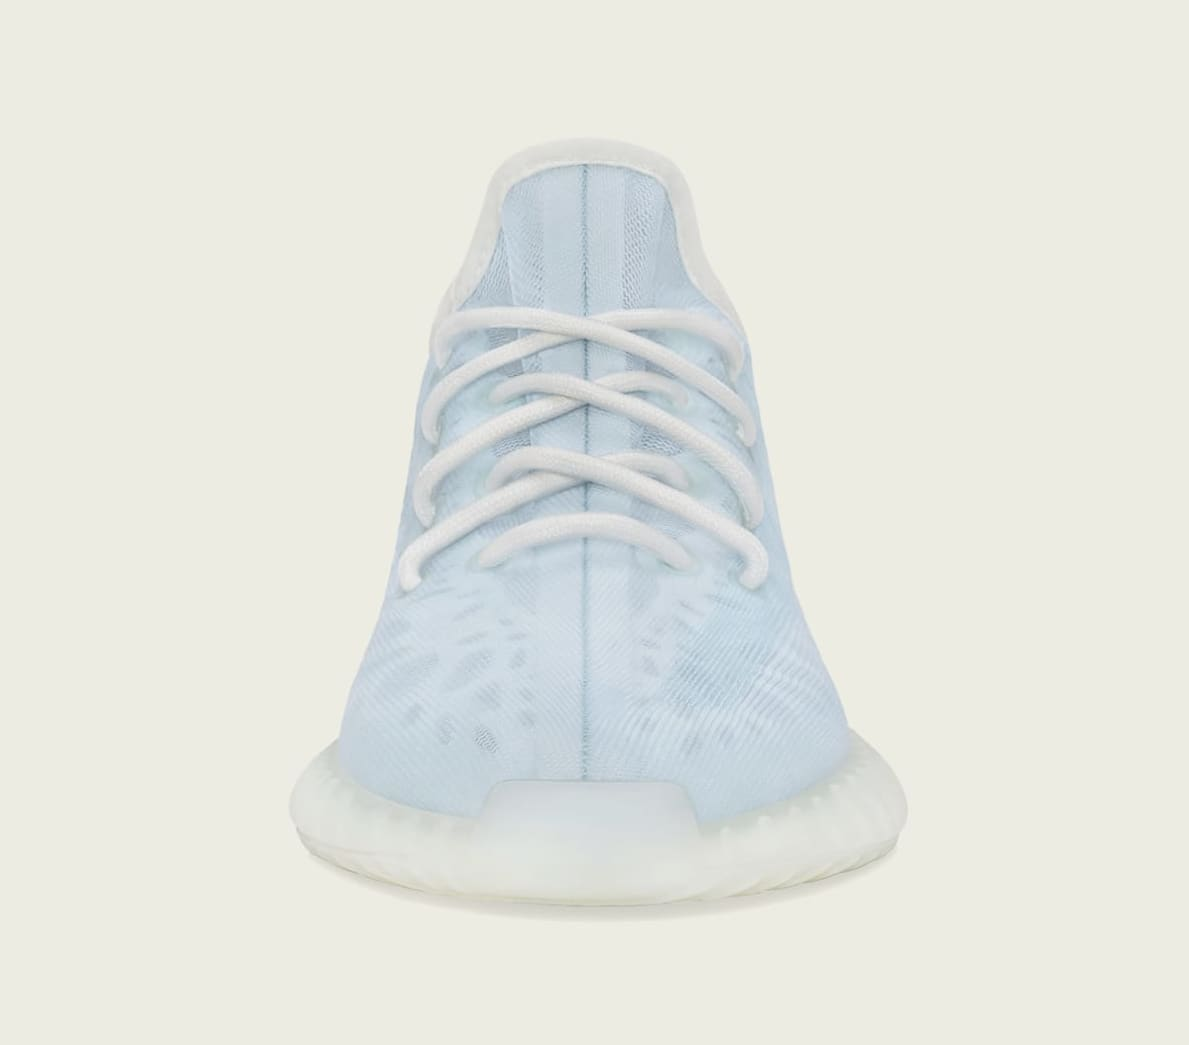 Adidas Yeezy Boost 350 V2 'Mono Ice' GW2869 Front